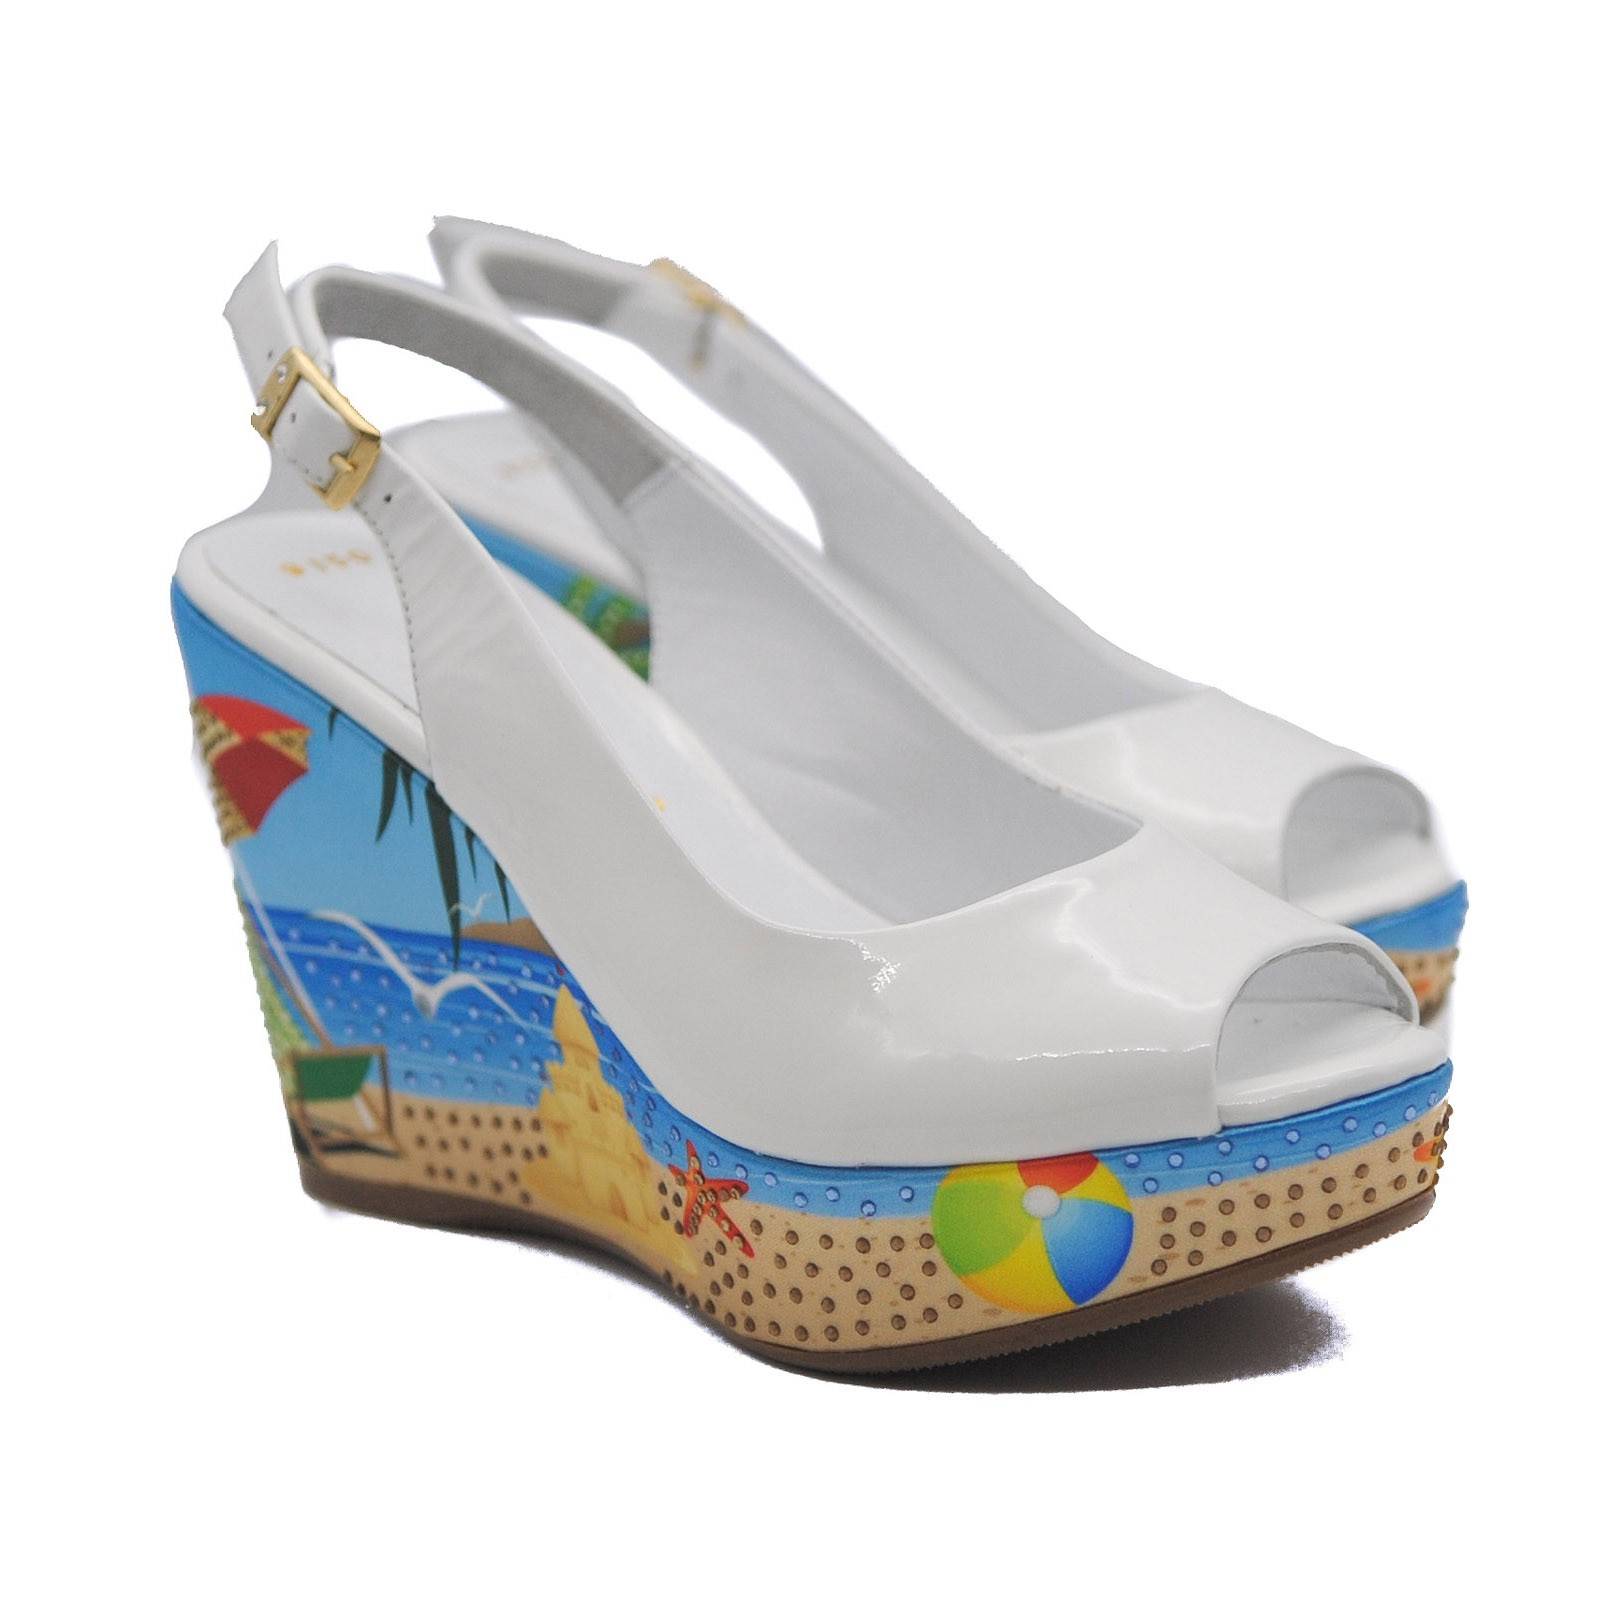 Goody2Shoes Slingback White Patent Wedges with Peep Toe and Diamanté Jewels on a Beach Scene